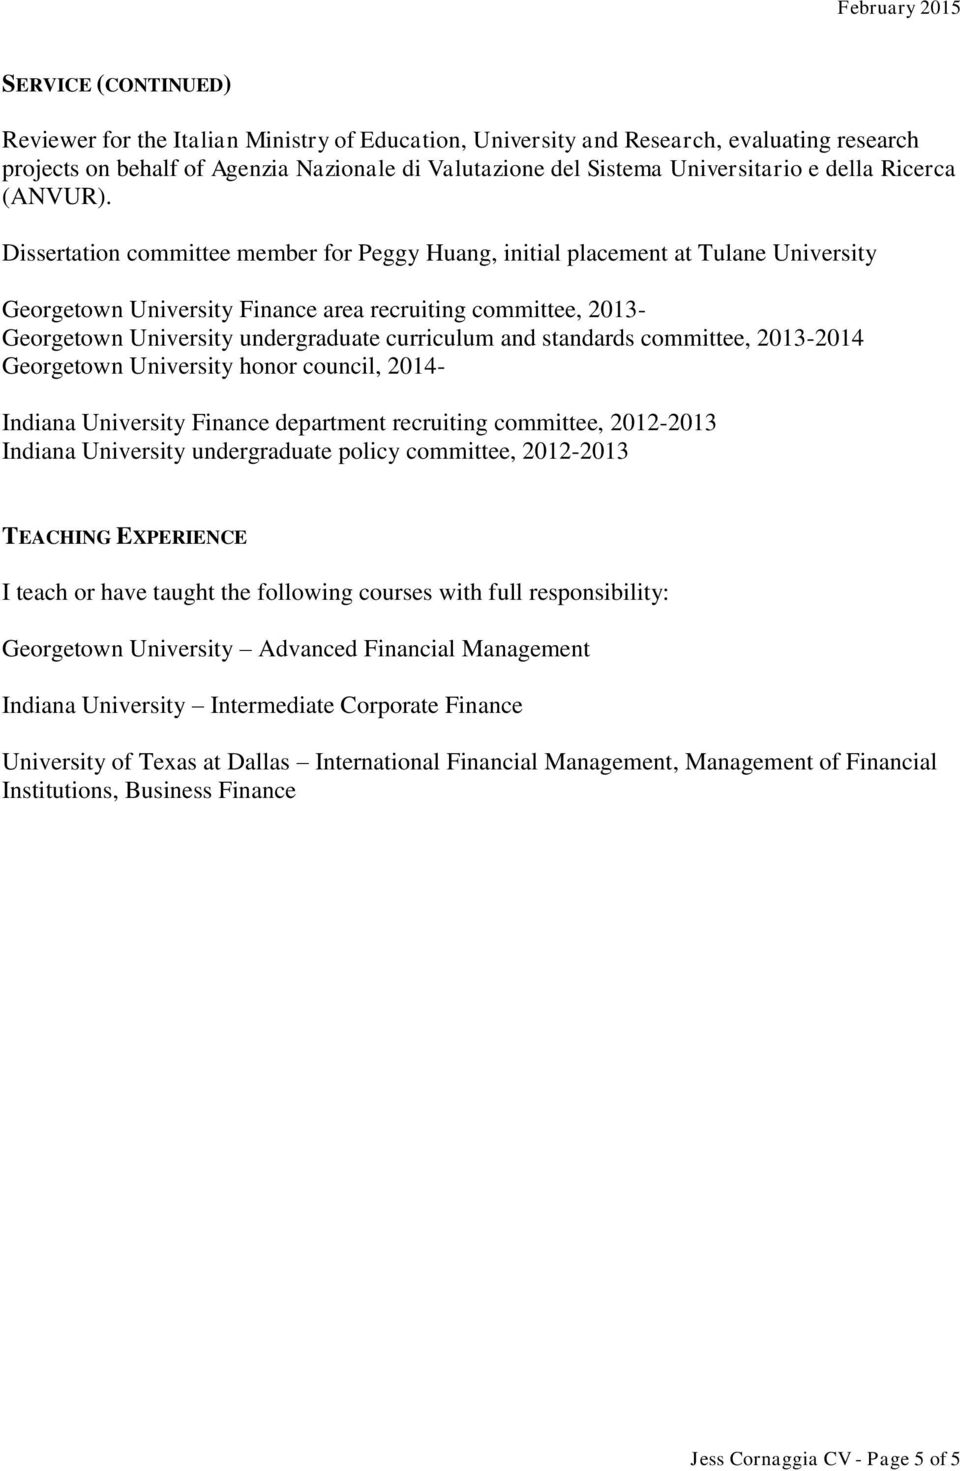 Dissertation committee member for Peggy Huang, initial placement at Tulane University Georgetown University Finance area recruiting committee, 2013- Georgetown University undergraduate curriculum and